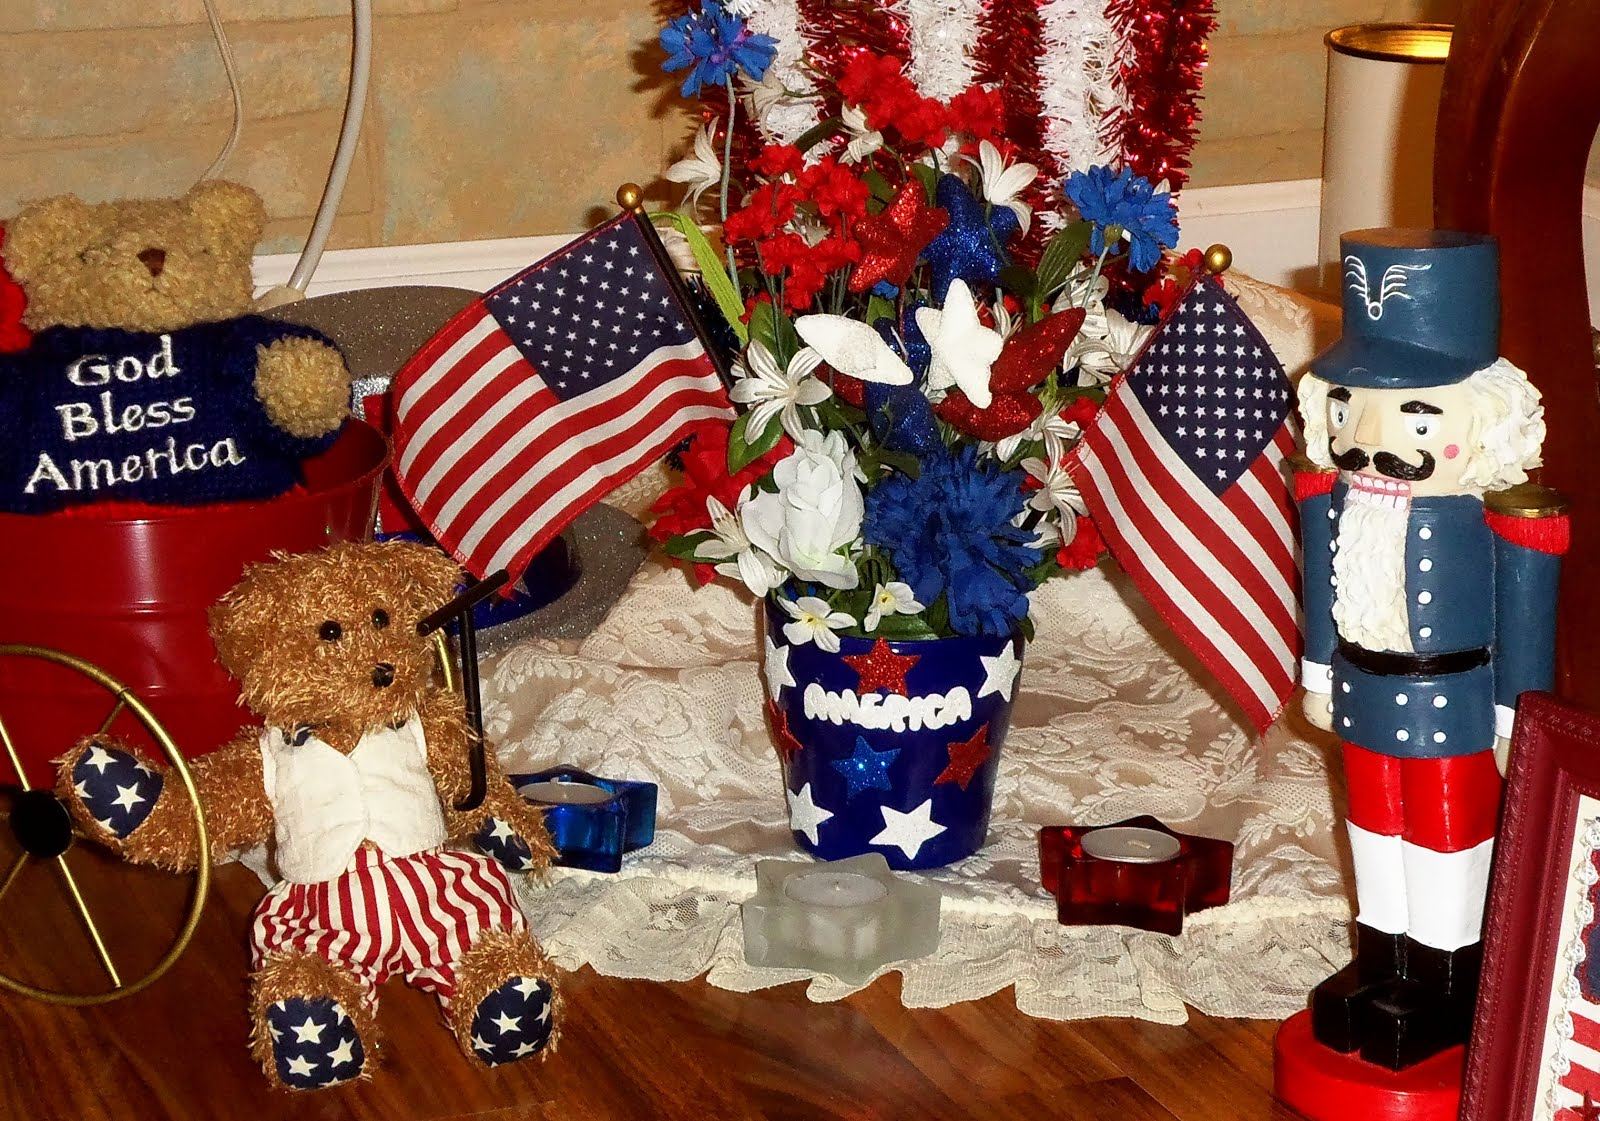 Summer Patriotic Decor 2015, Part 3